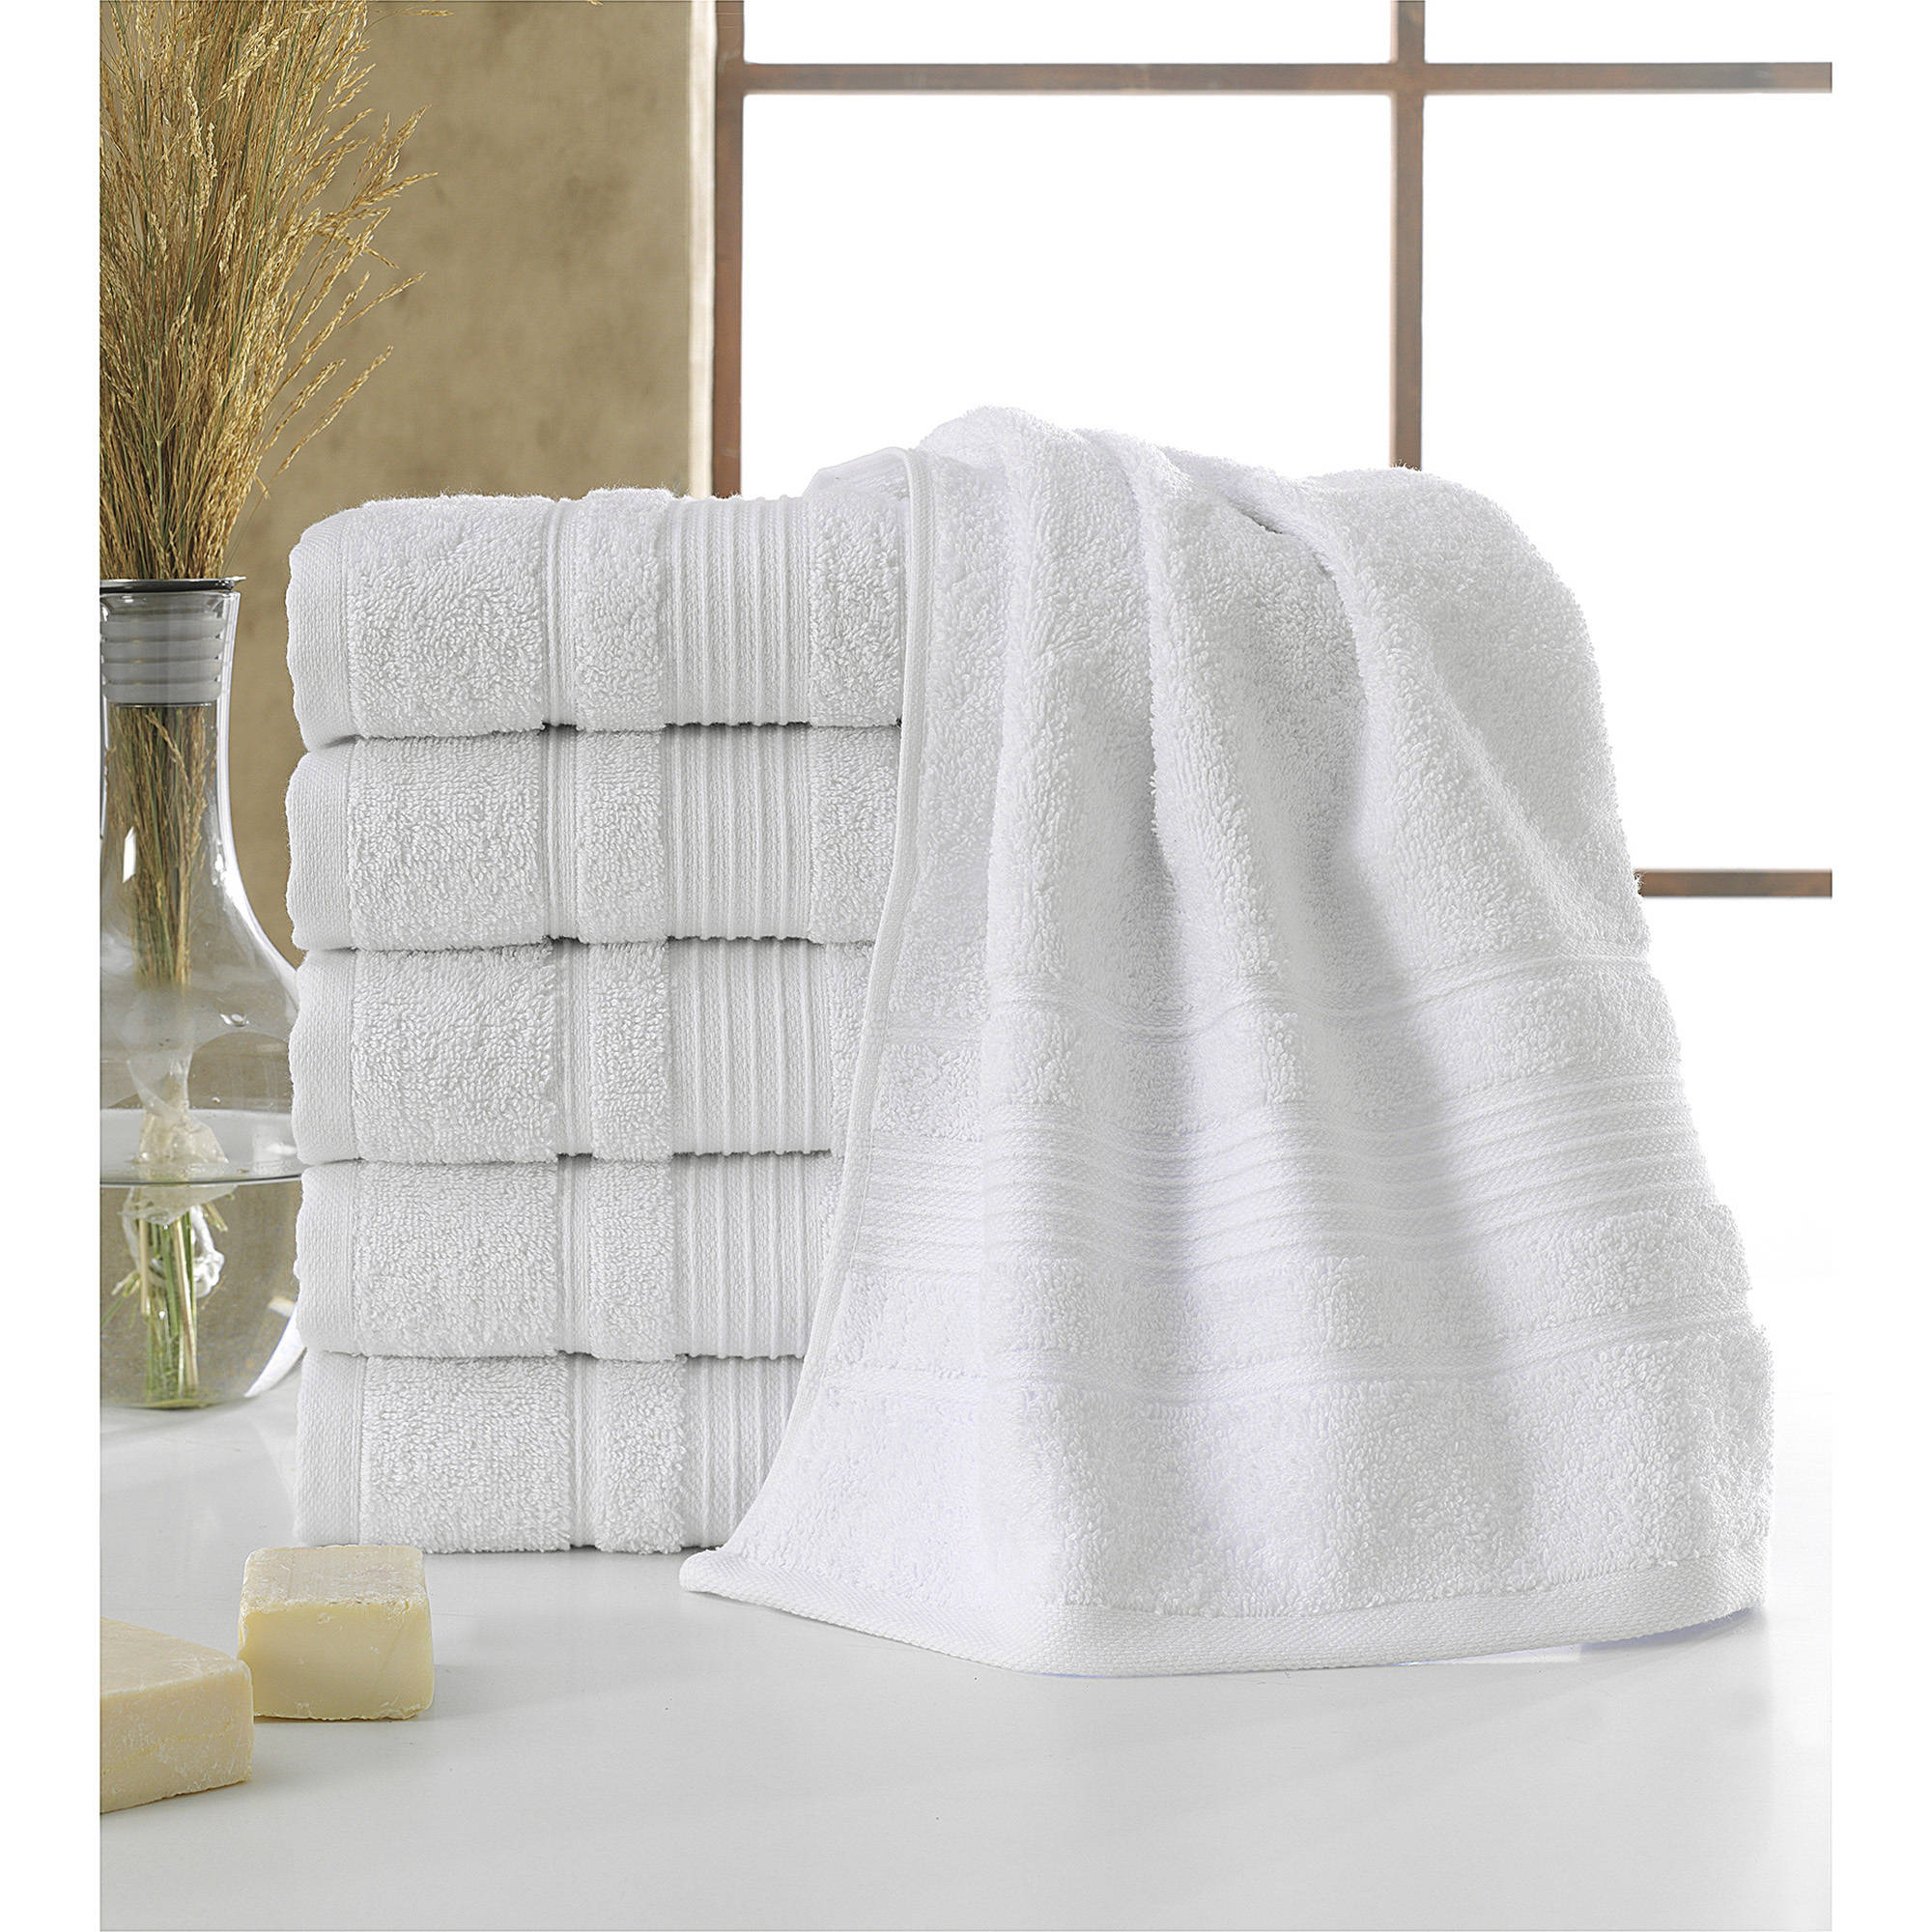 "Ottomanson Luxury Hotel and Spa Hand Towels 6-Piece Set, 16"" x 30"", Turkish Cotton"